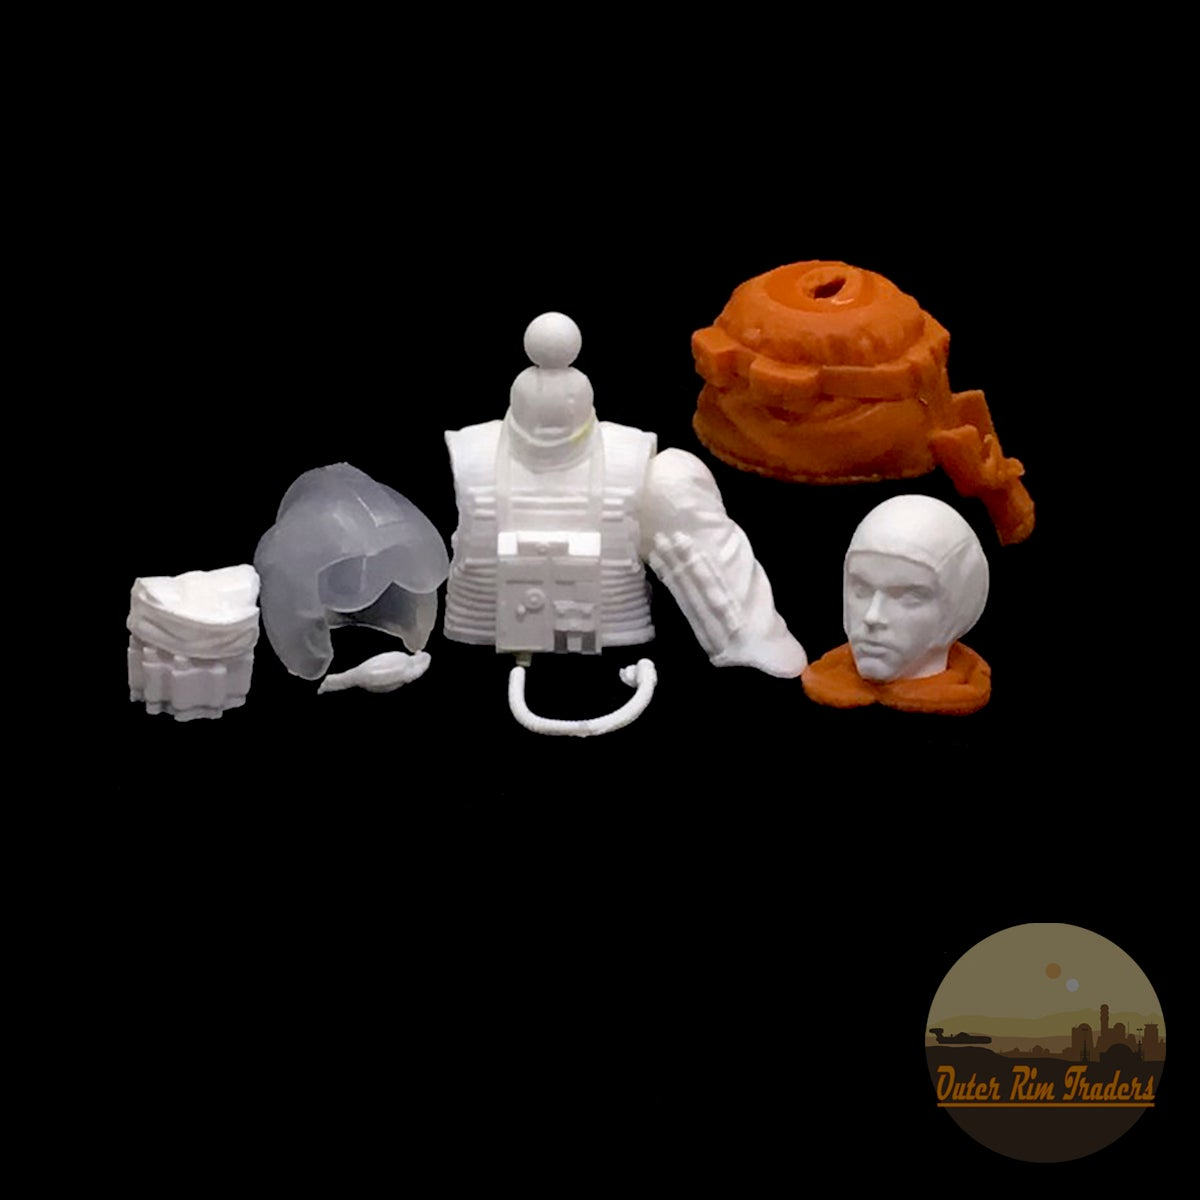 Image of Hoth Red Five Pilot Kit